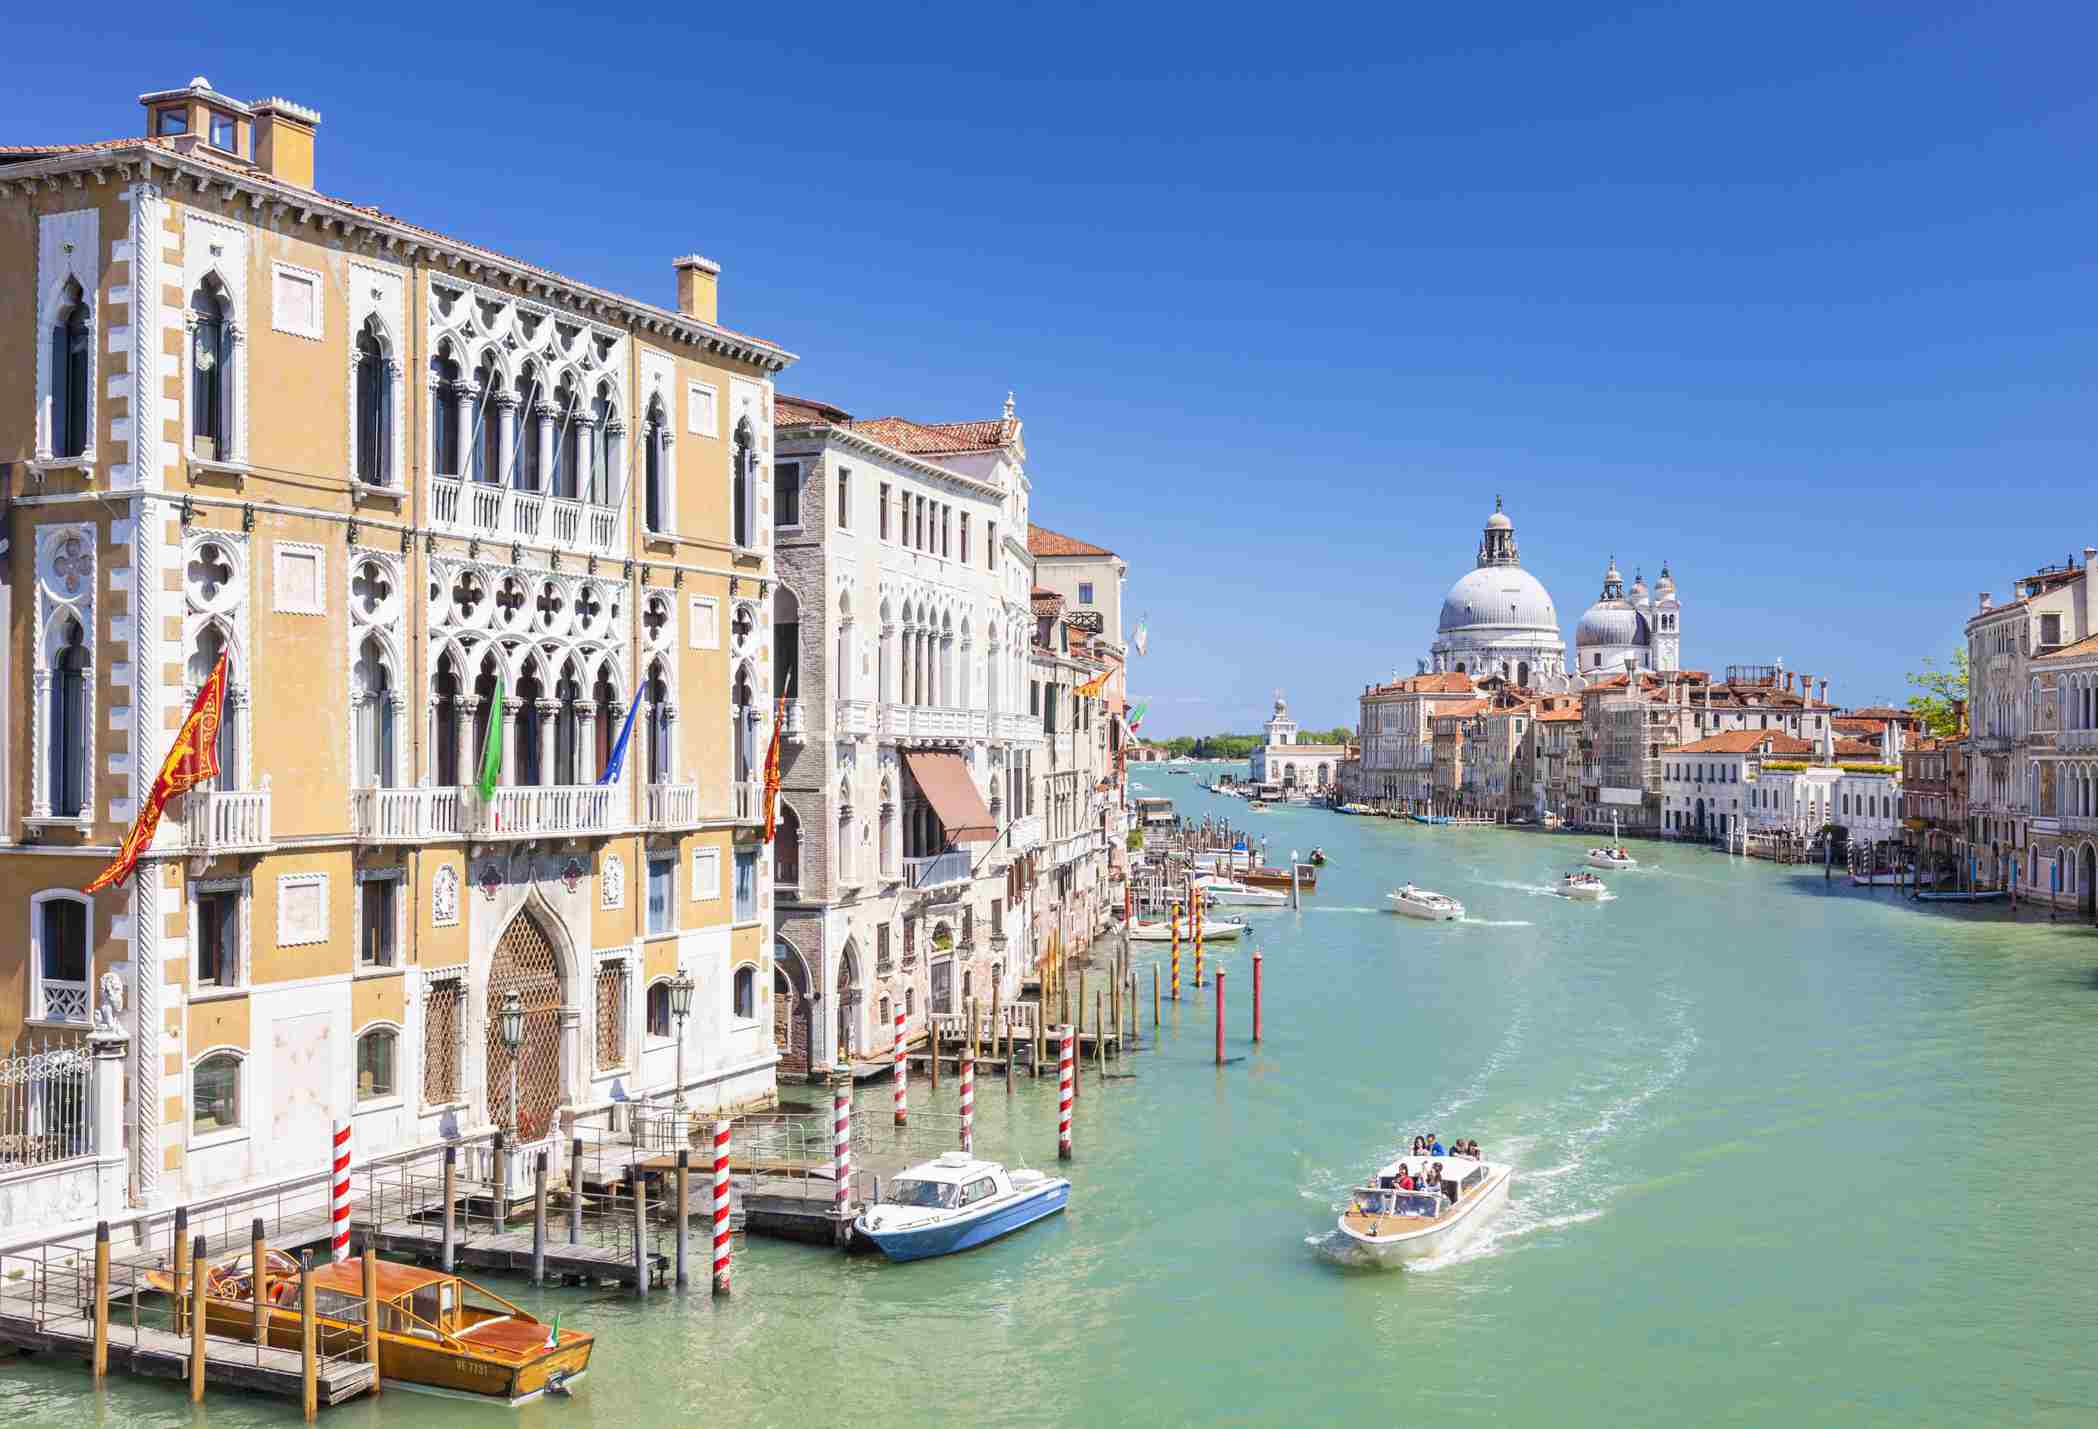 Vaporettos on the canals of Venice